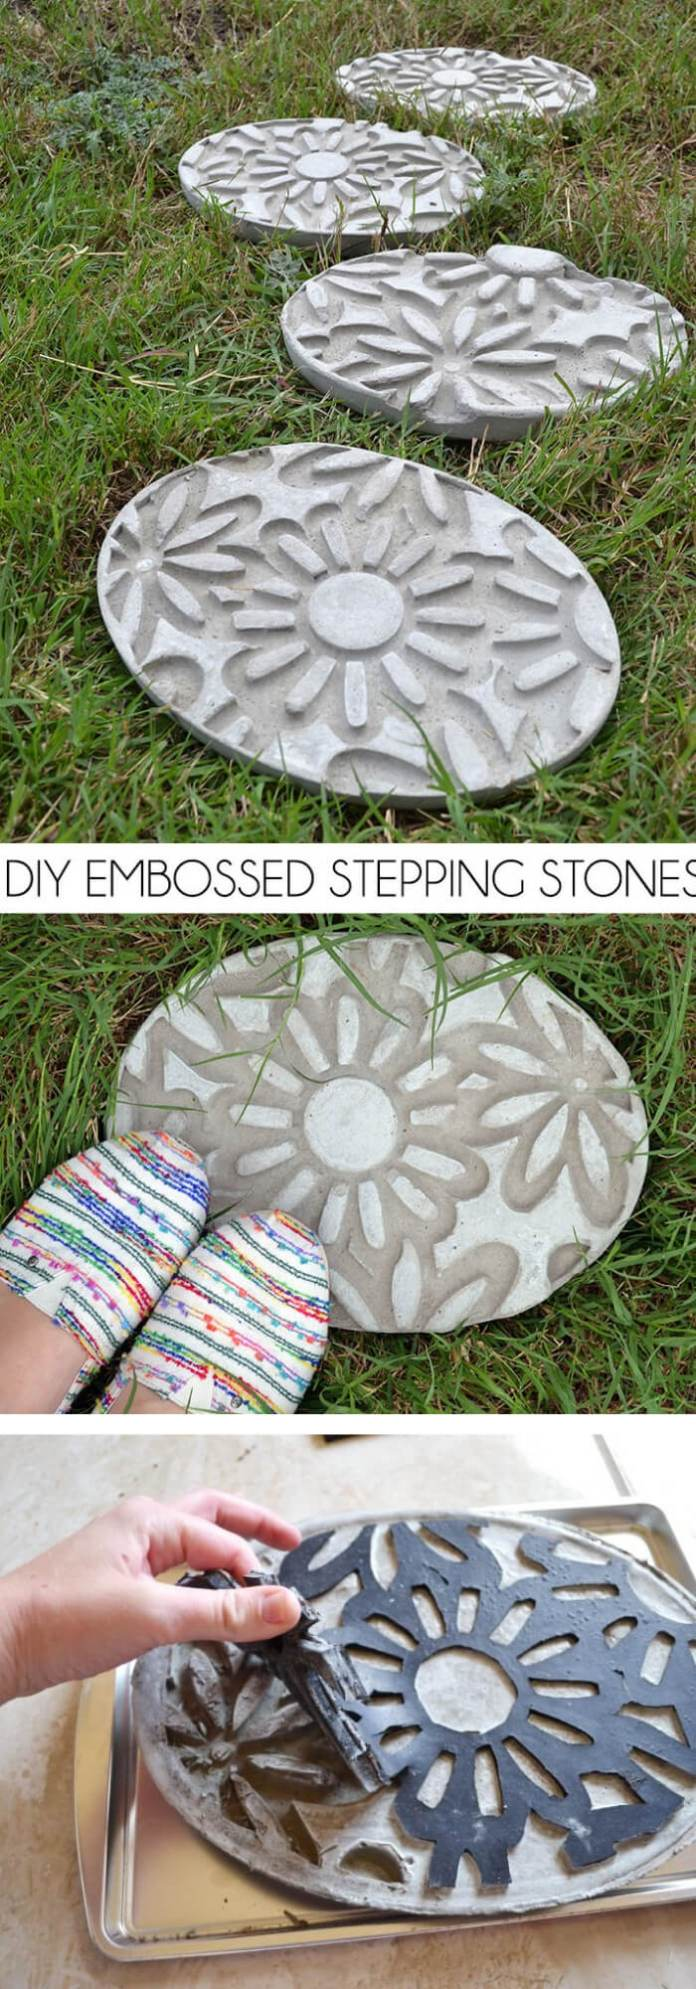 Embossed Stepping Stone